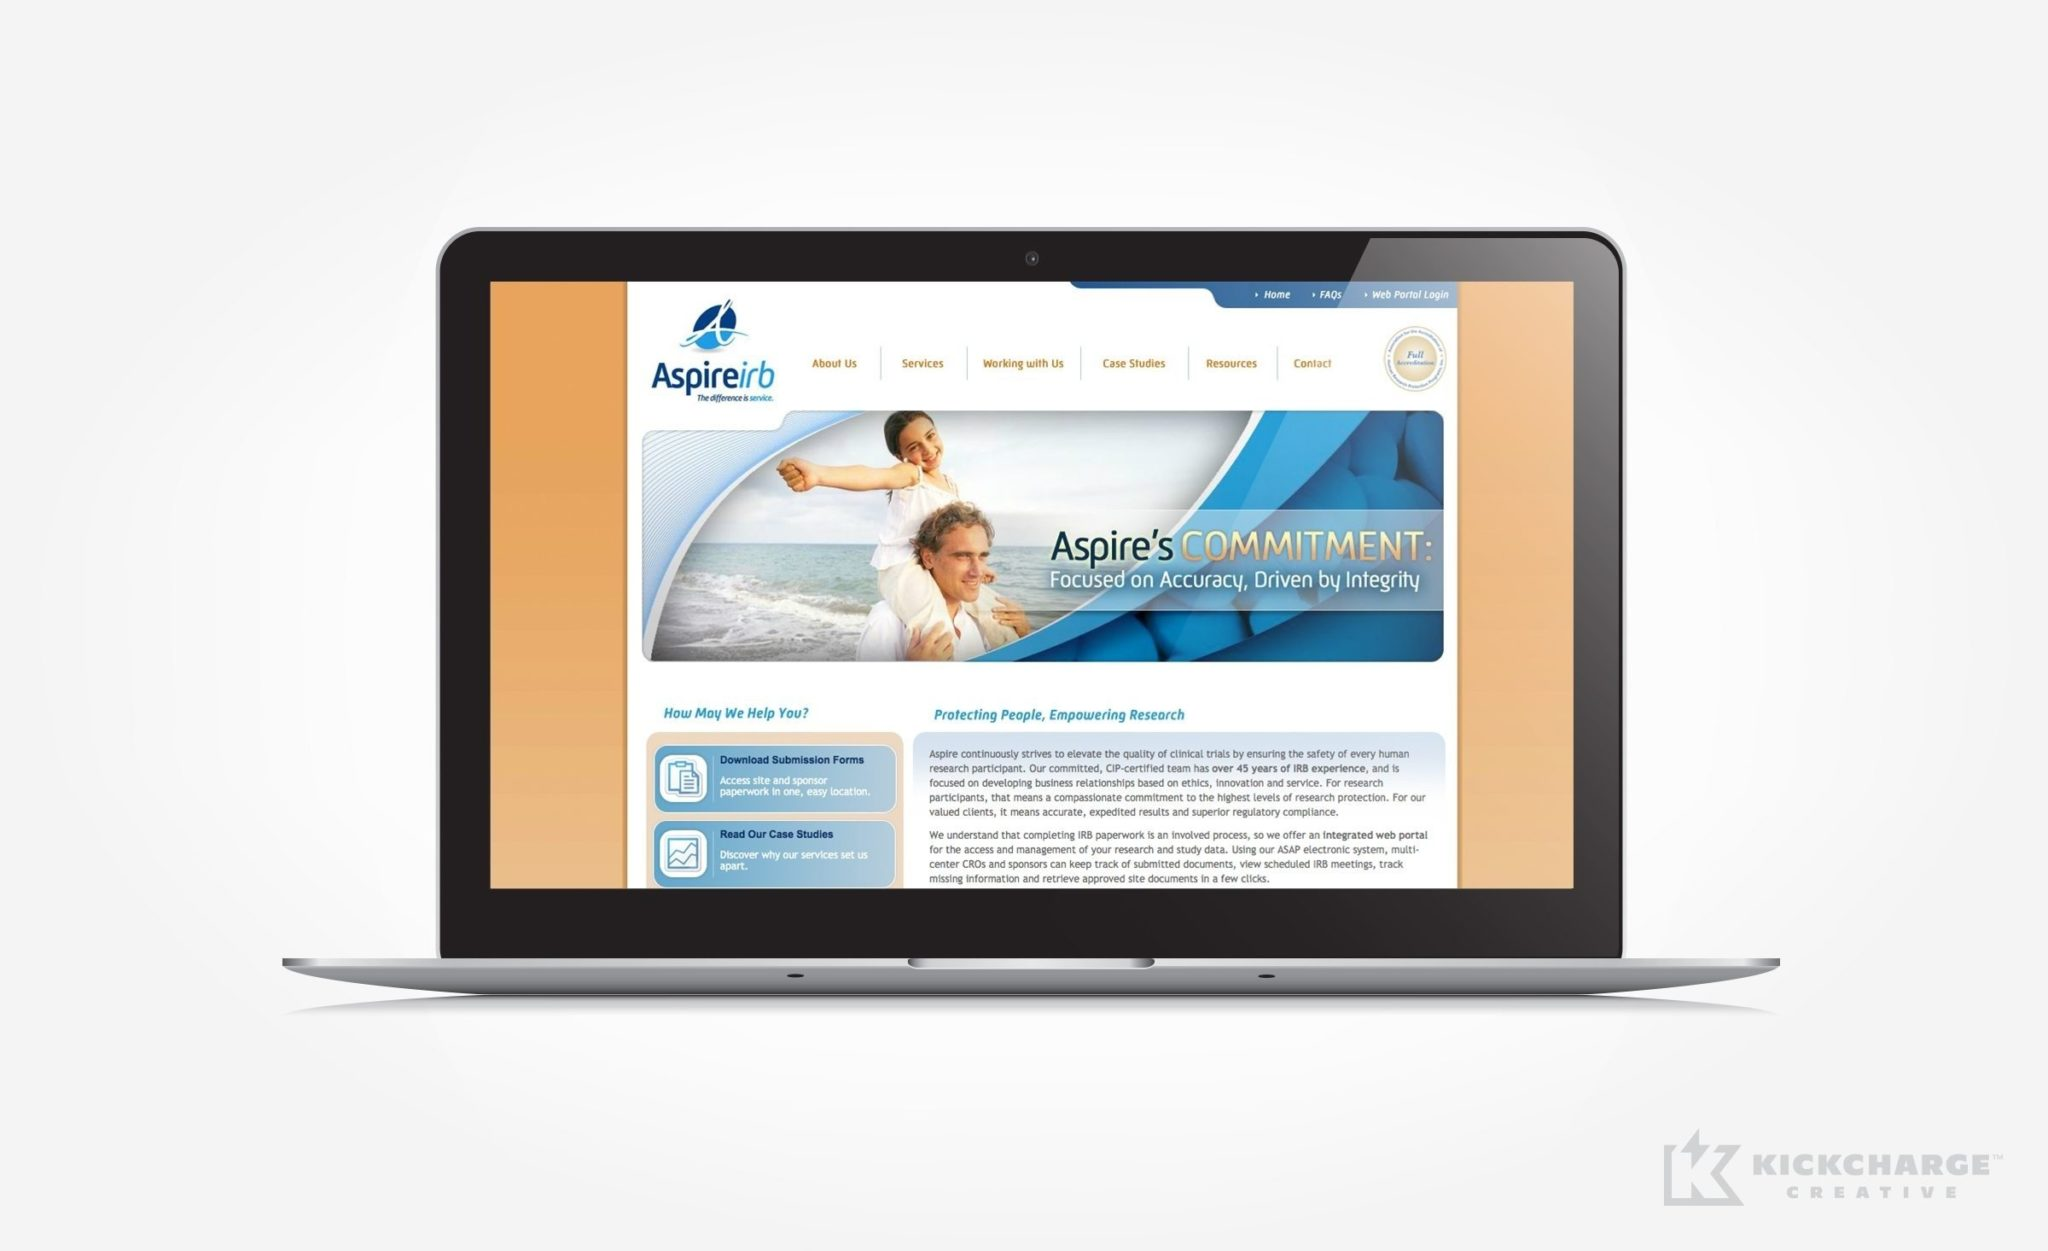 Website design for a company in La Mesa, California that promotes research in healthcare.